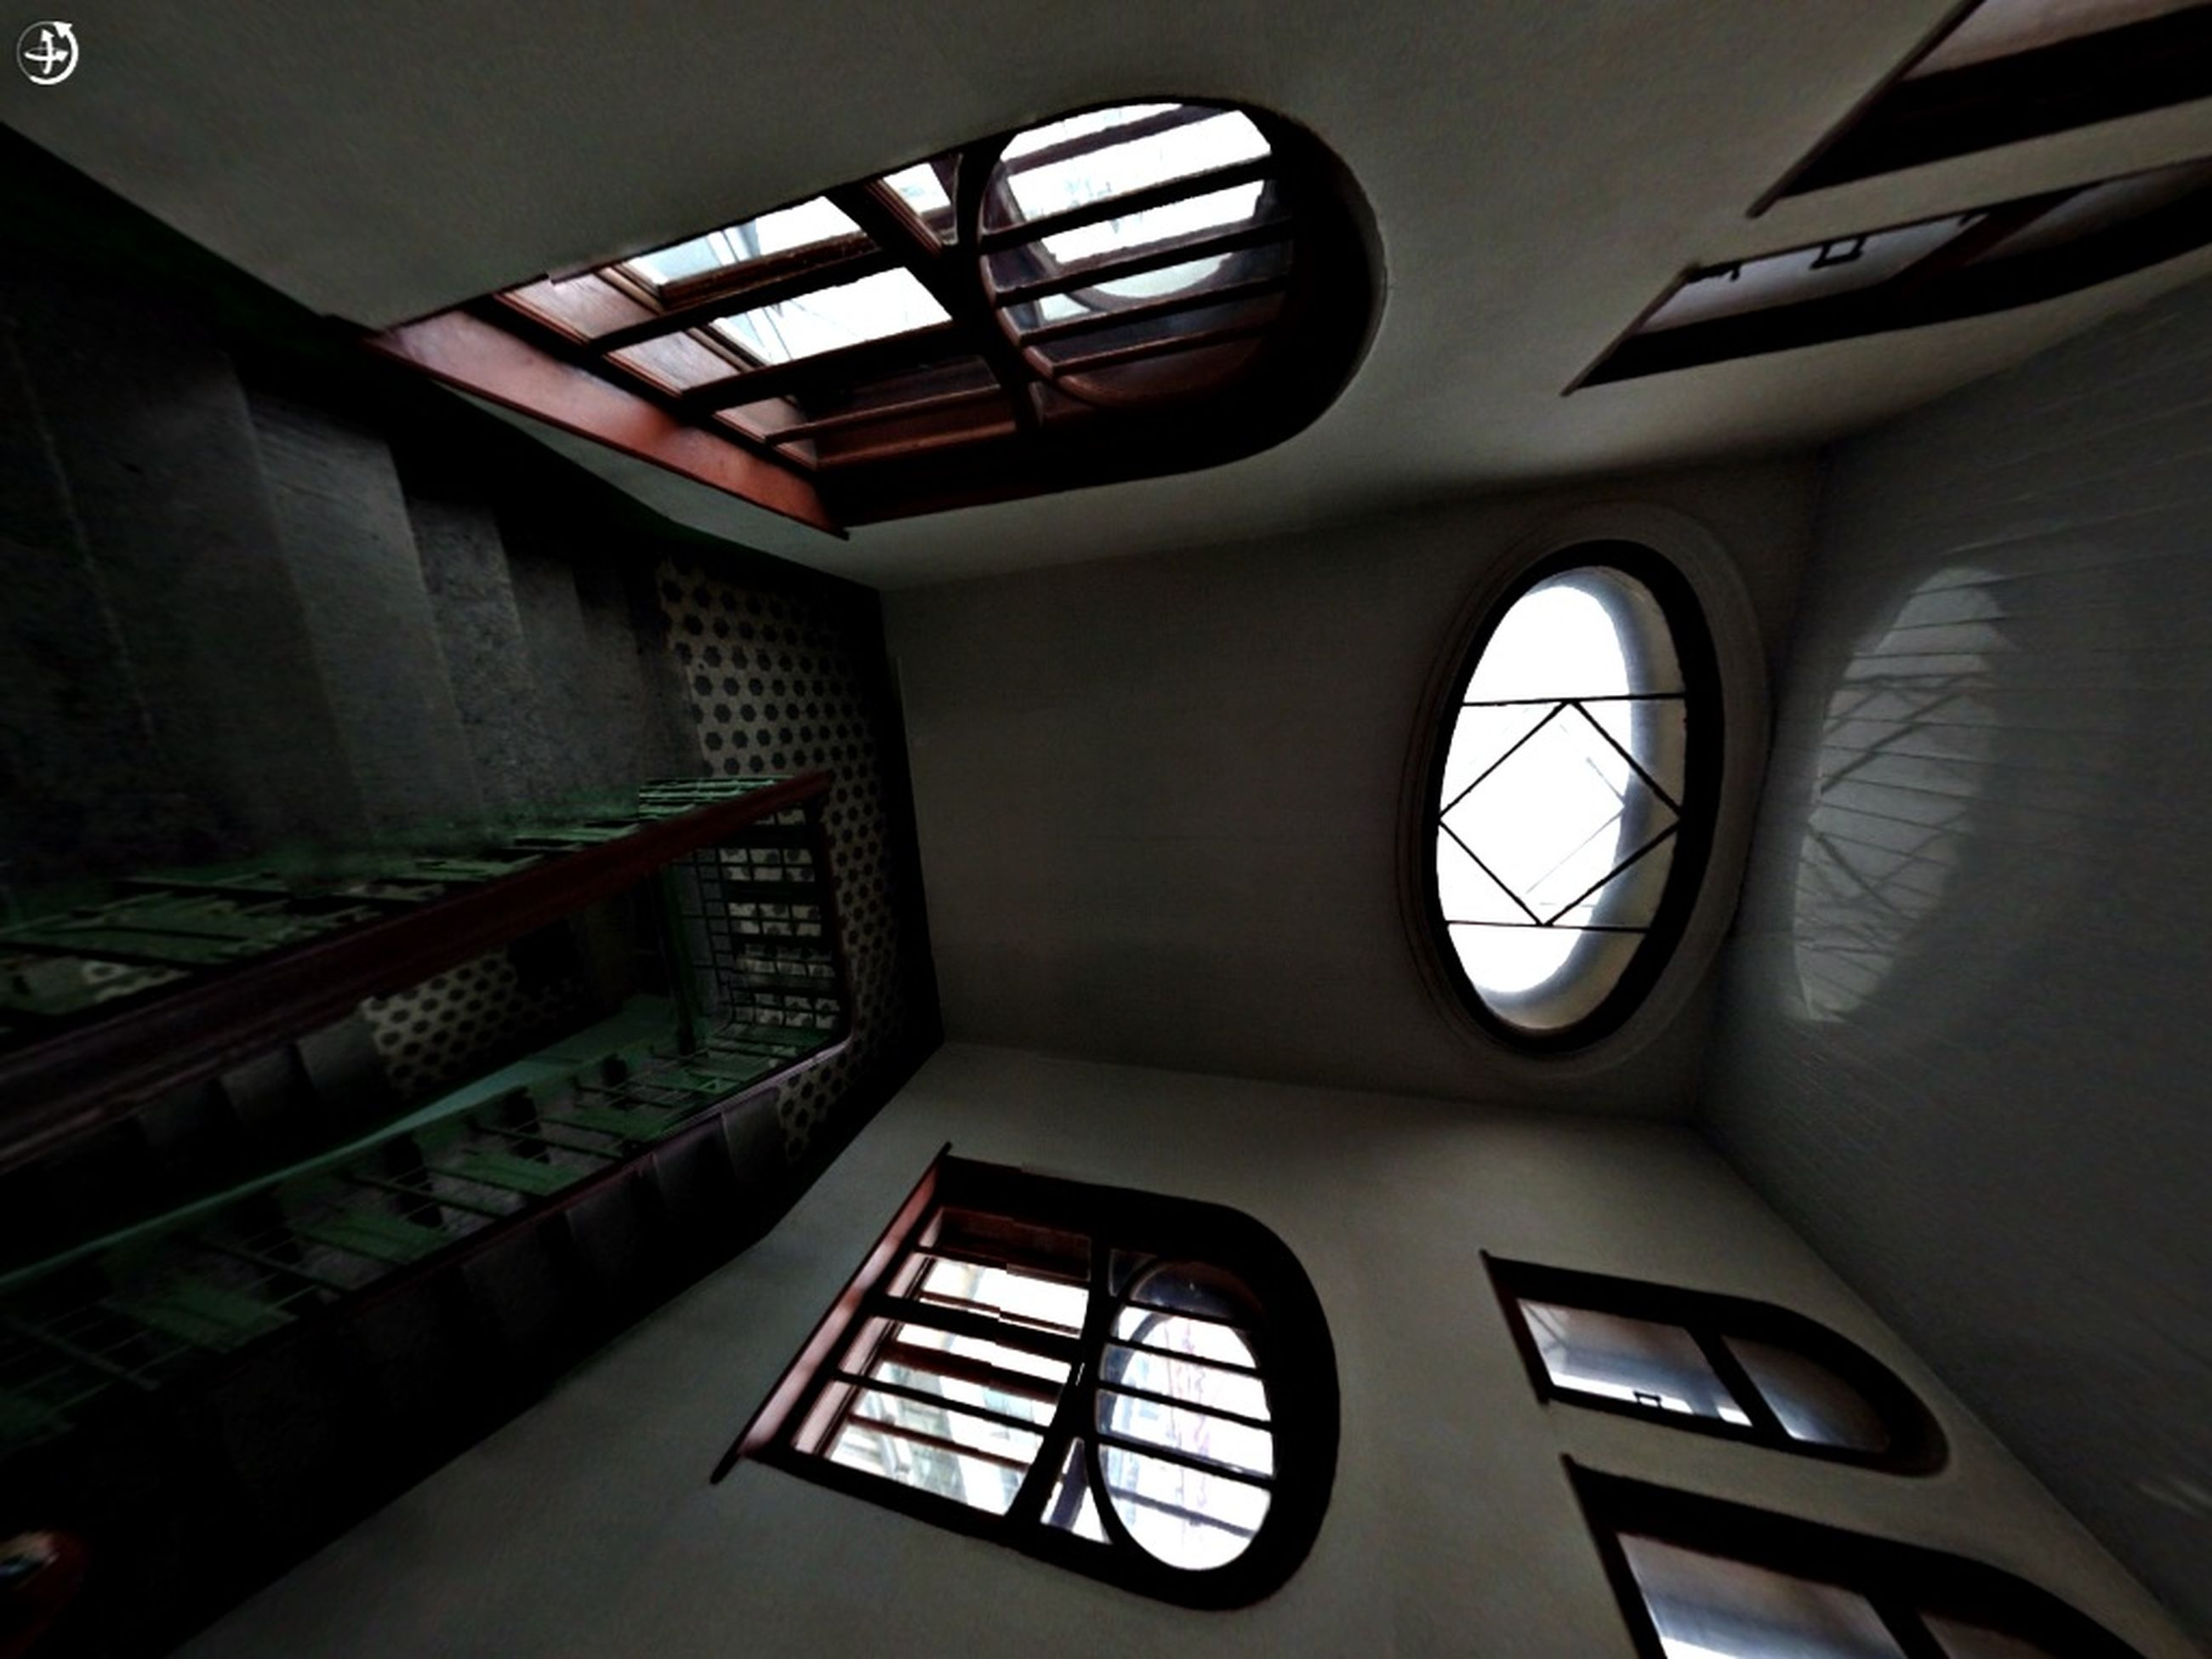 low angle view, architecture, indoors, built structure, window, directly below, building, building exterior, no people, glass - material, skylight, illuminated, clock, ceiling, day, geometric shape, time, pattern, design, architectural feature